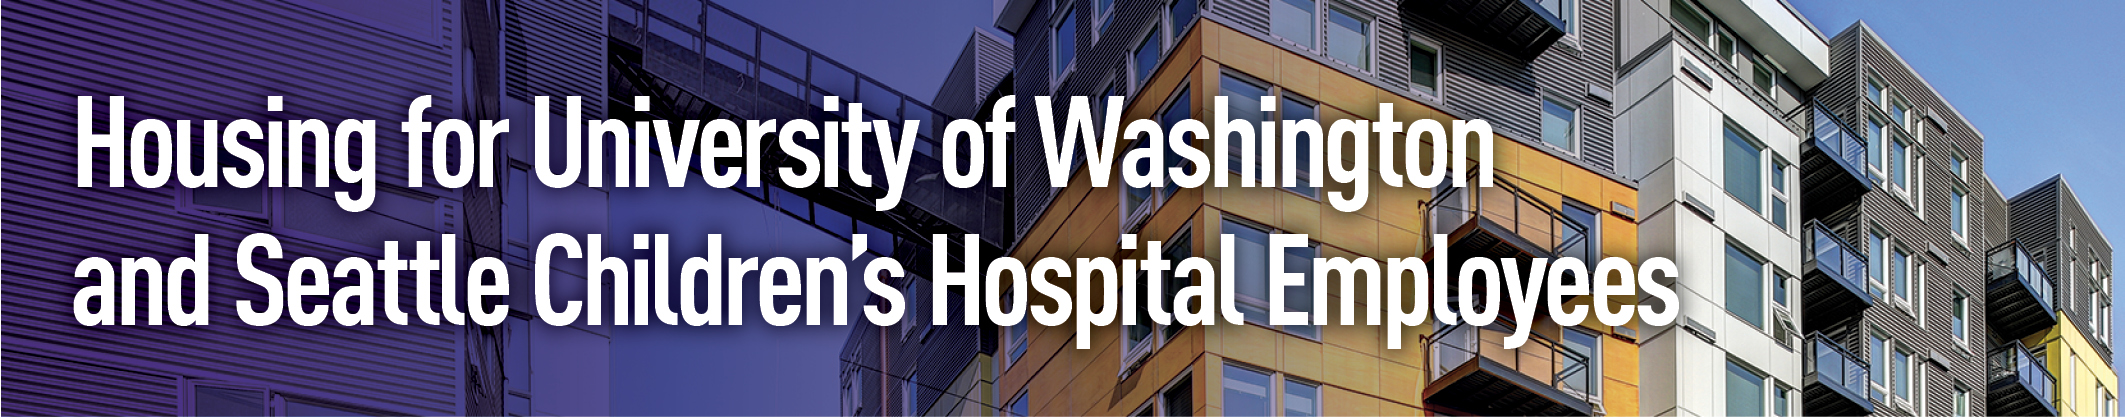 Housing for UW and Seattle Children's Hospital Employees